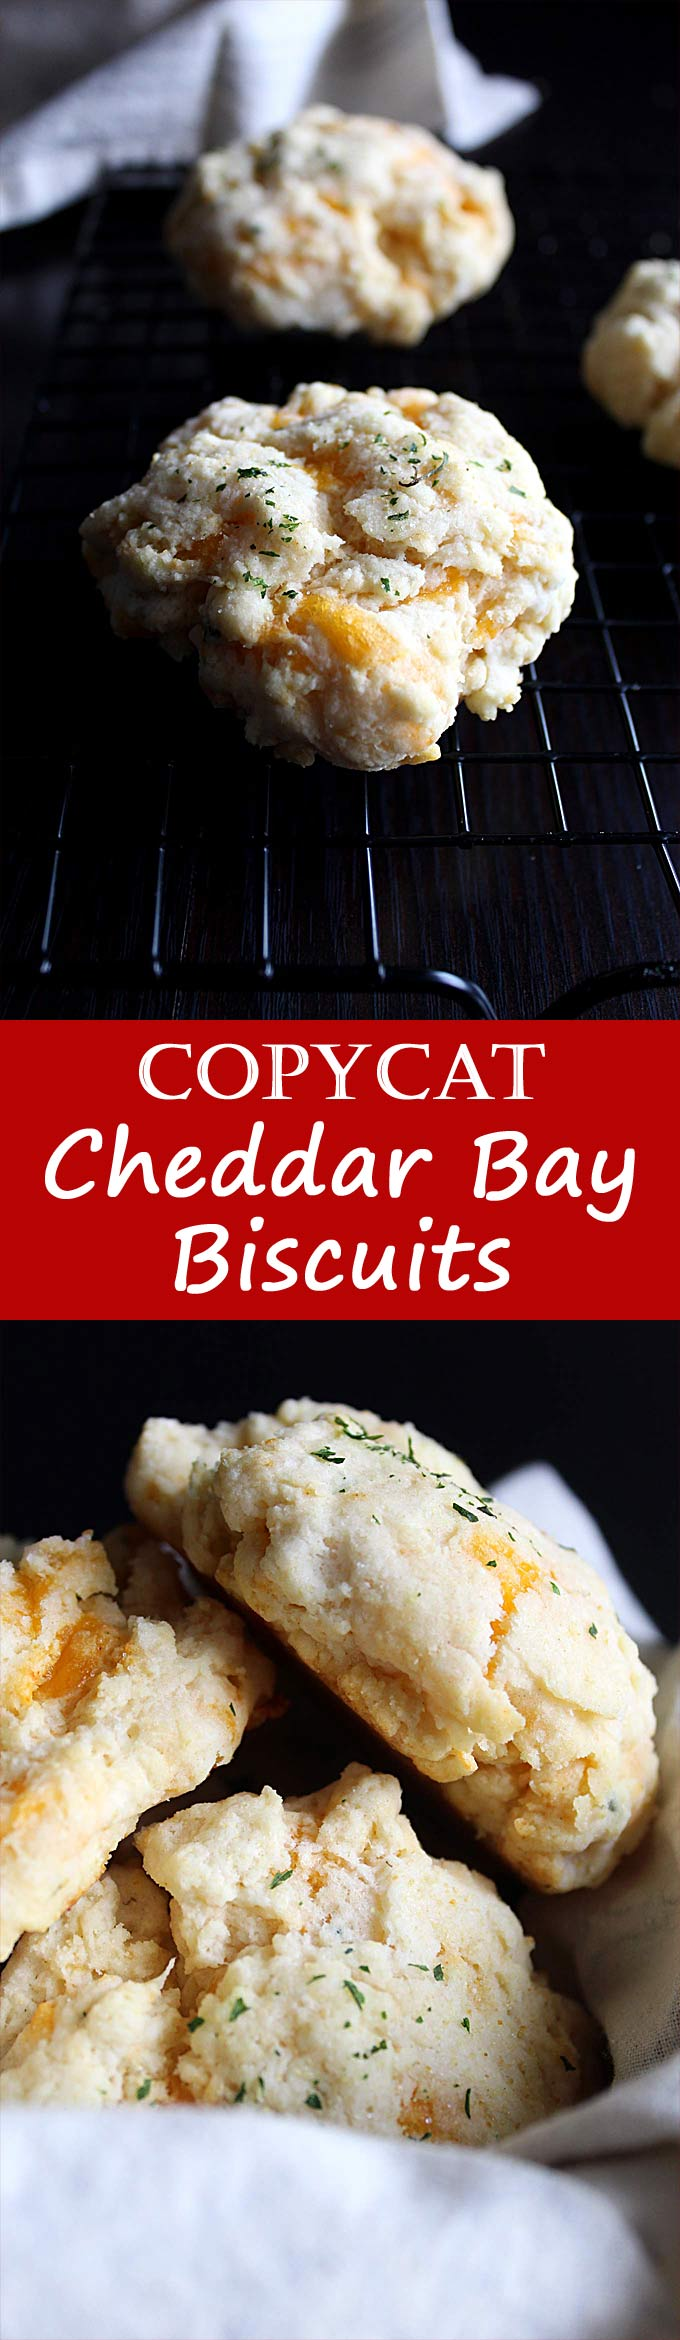 how to make cheddar bay biscuits with bisquick